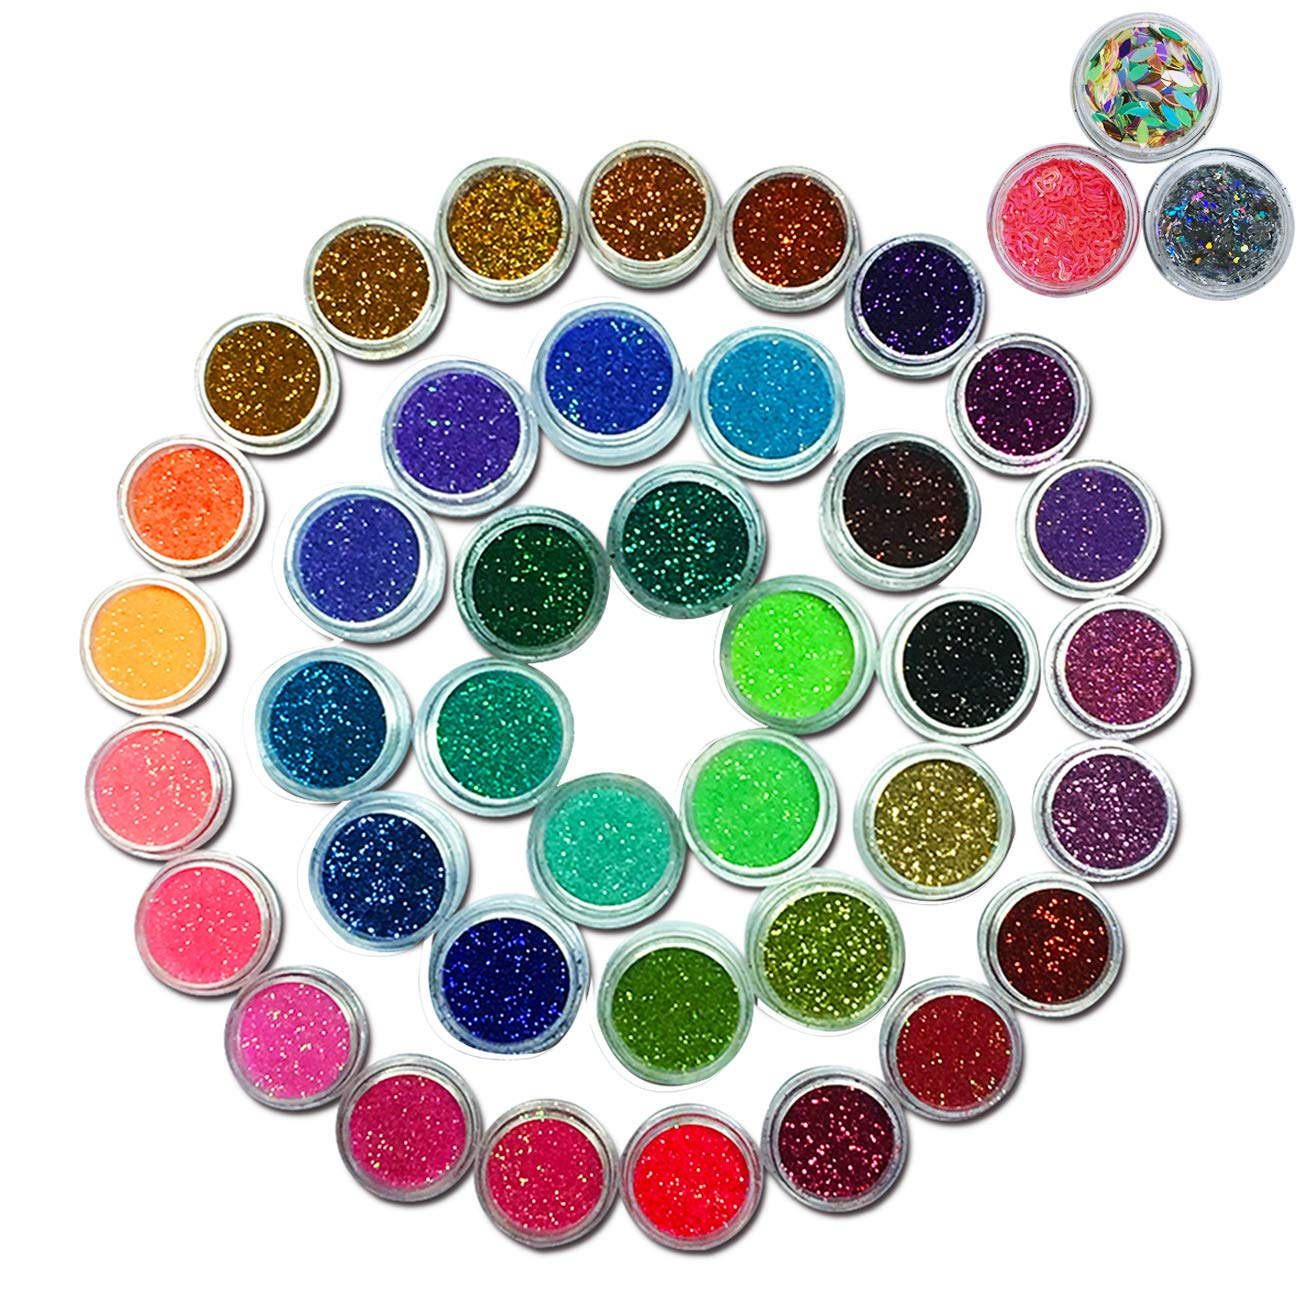 Lasten Nail Glitter, Colorful Mixed Sequins Glitter Manicure Art Crafts, 3D Mini Bottles Nail Art Set, DIY Art Decoration Set For Face Body Hair Nail Paint And Phone (48 bottles/set)